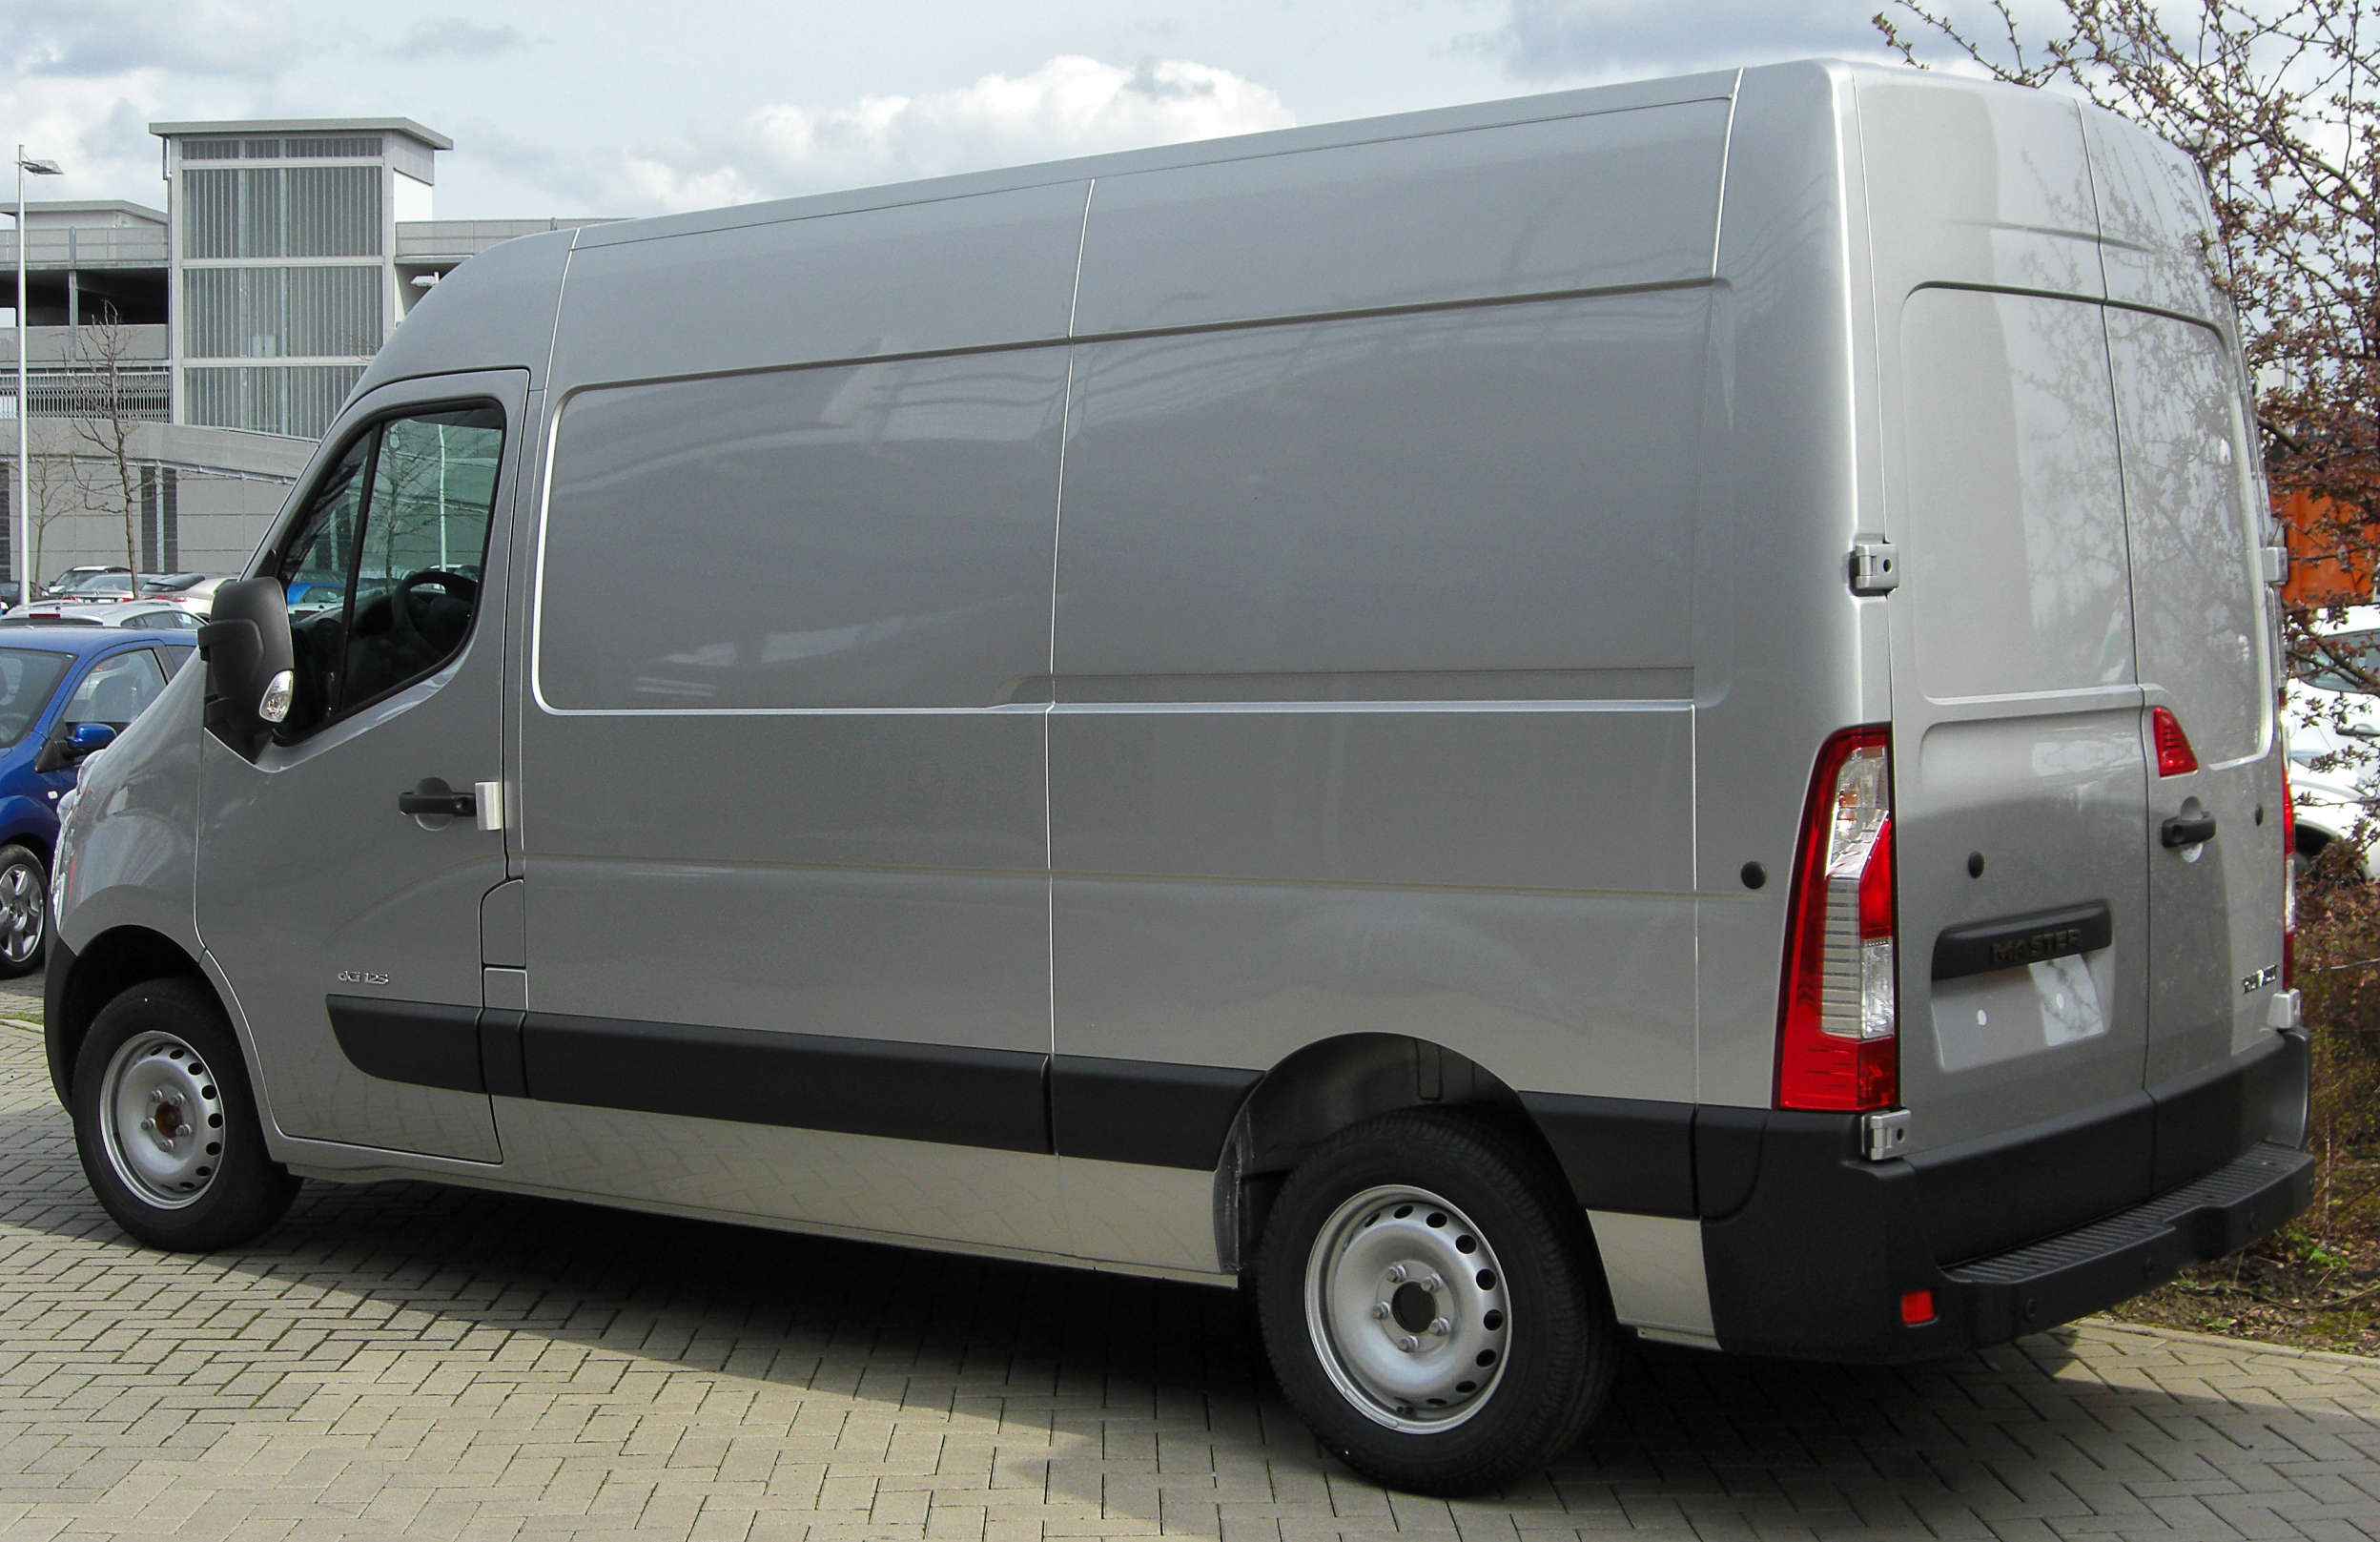 file renault master iii rear wikimedia commons. Black Bedroom Furniture Sets. Home Design Ideas